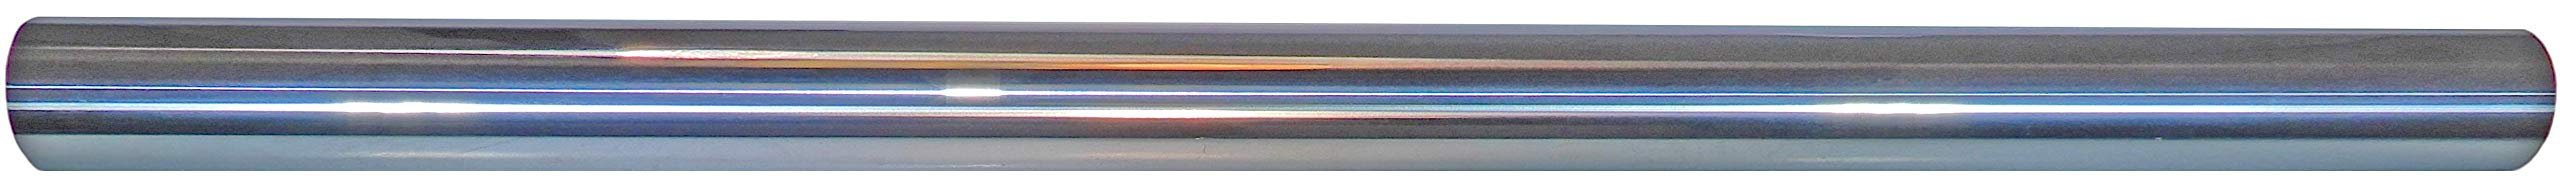 Castlebar 20mm X 330mm, Grade 9008/C2, Ground Polished Cemented Tungsten Carbide Round Rod by Castlebar